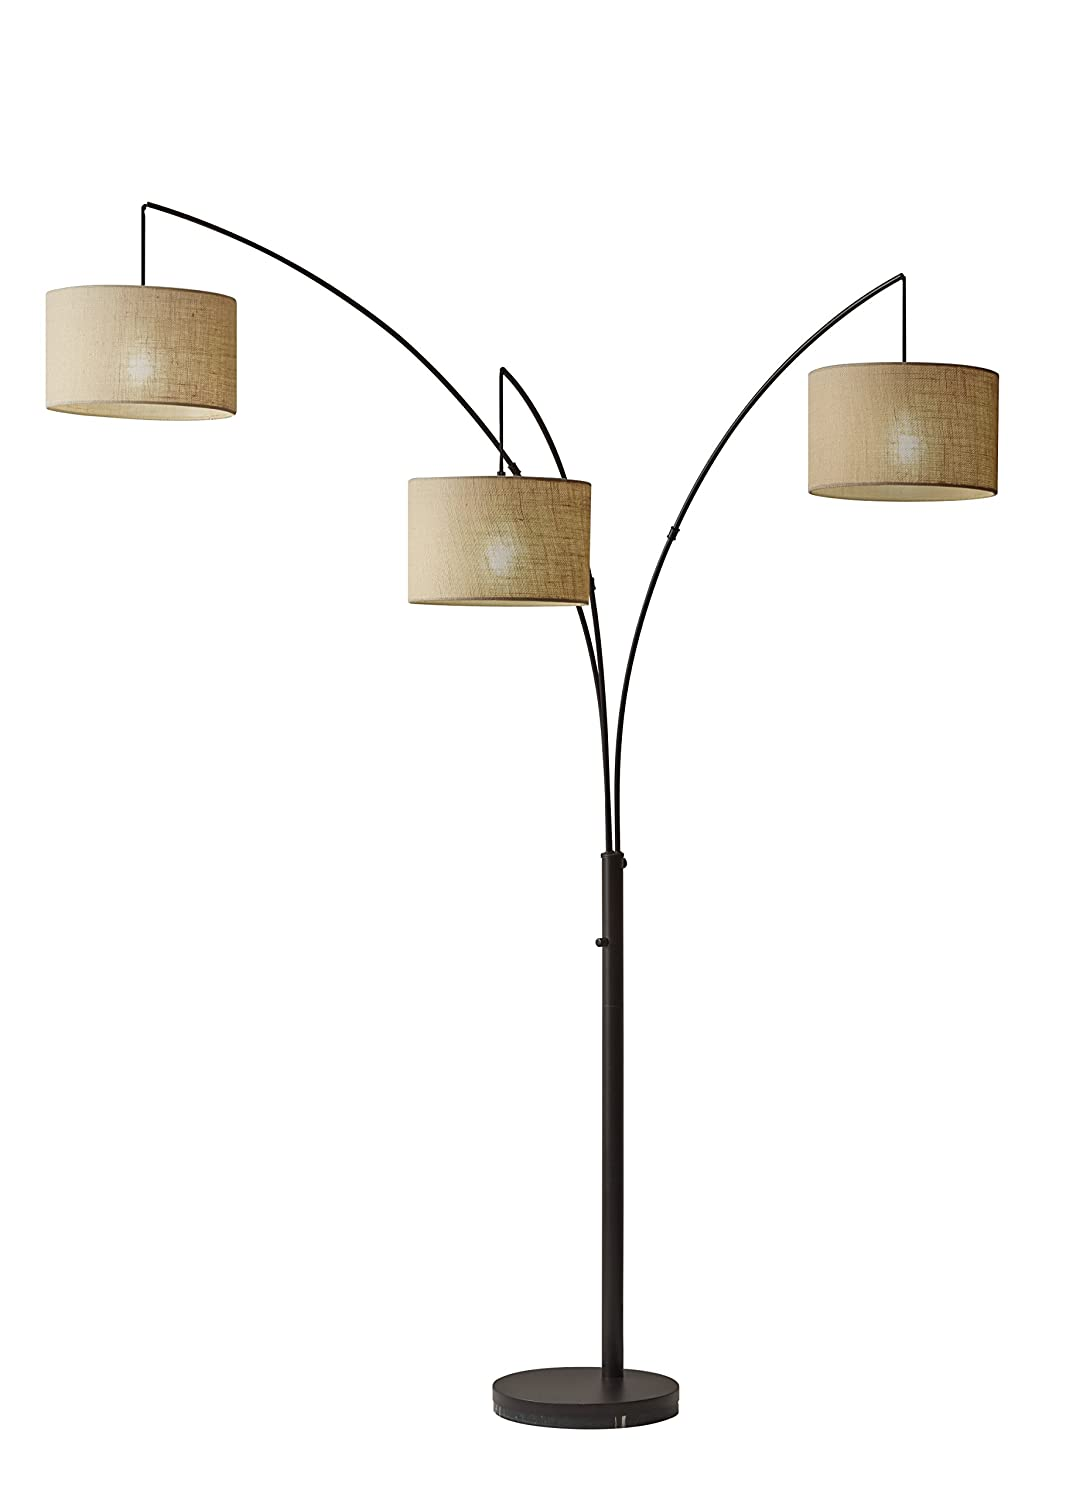 Top 10 Best Halogen Floor Lamp Reviews in 2021 3